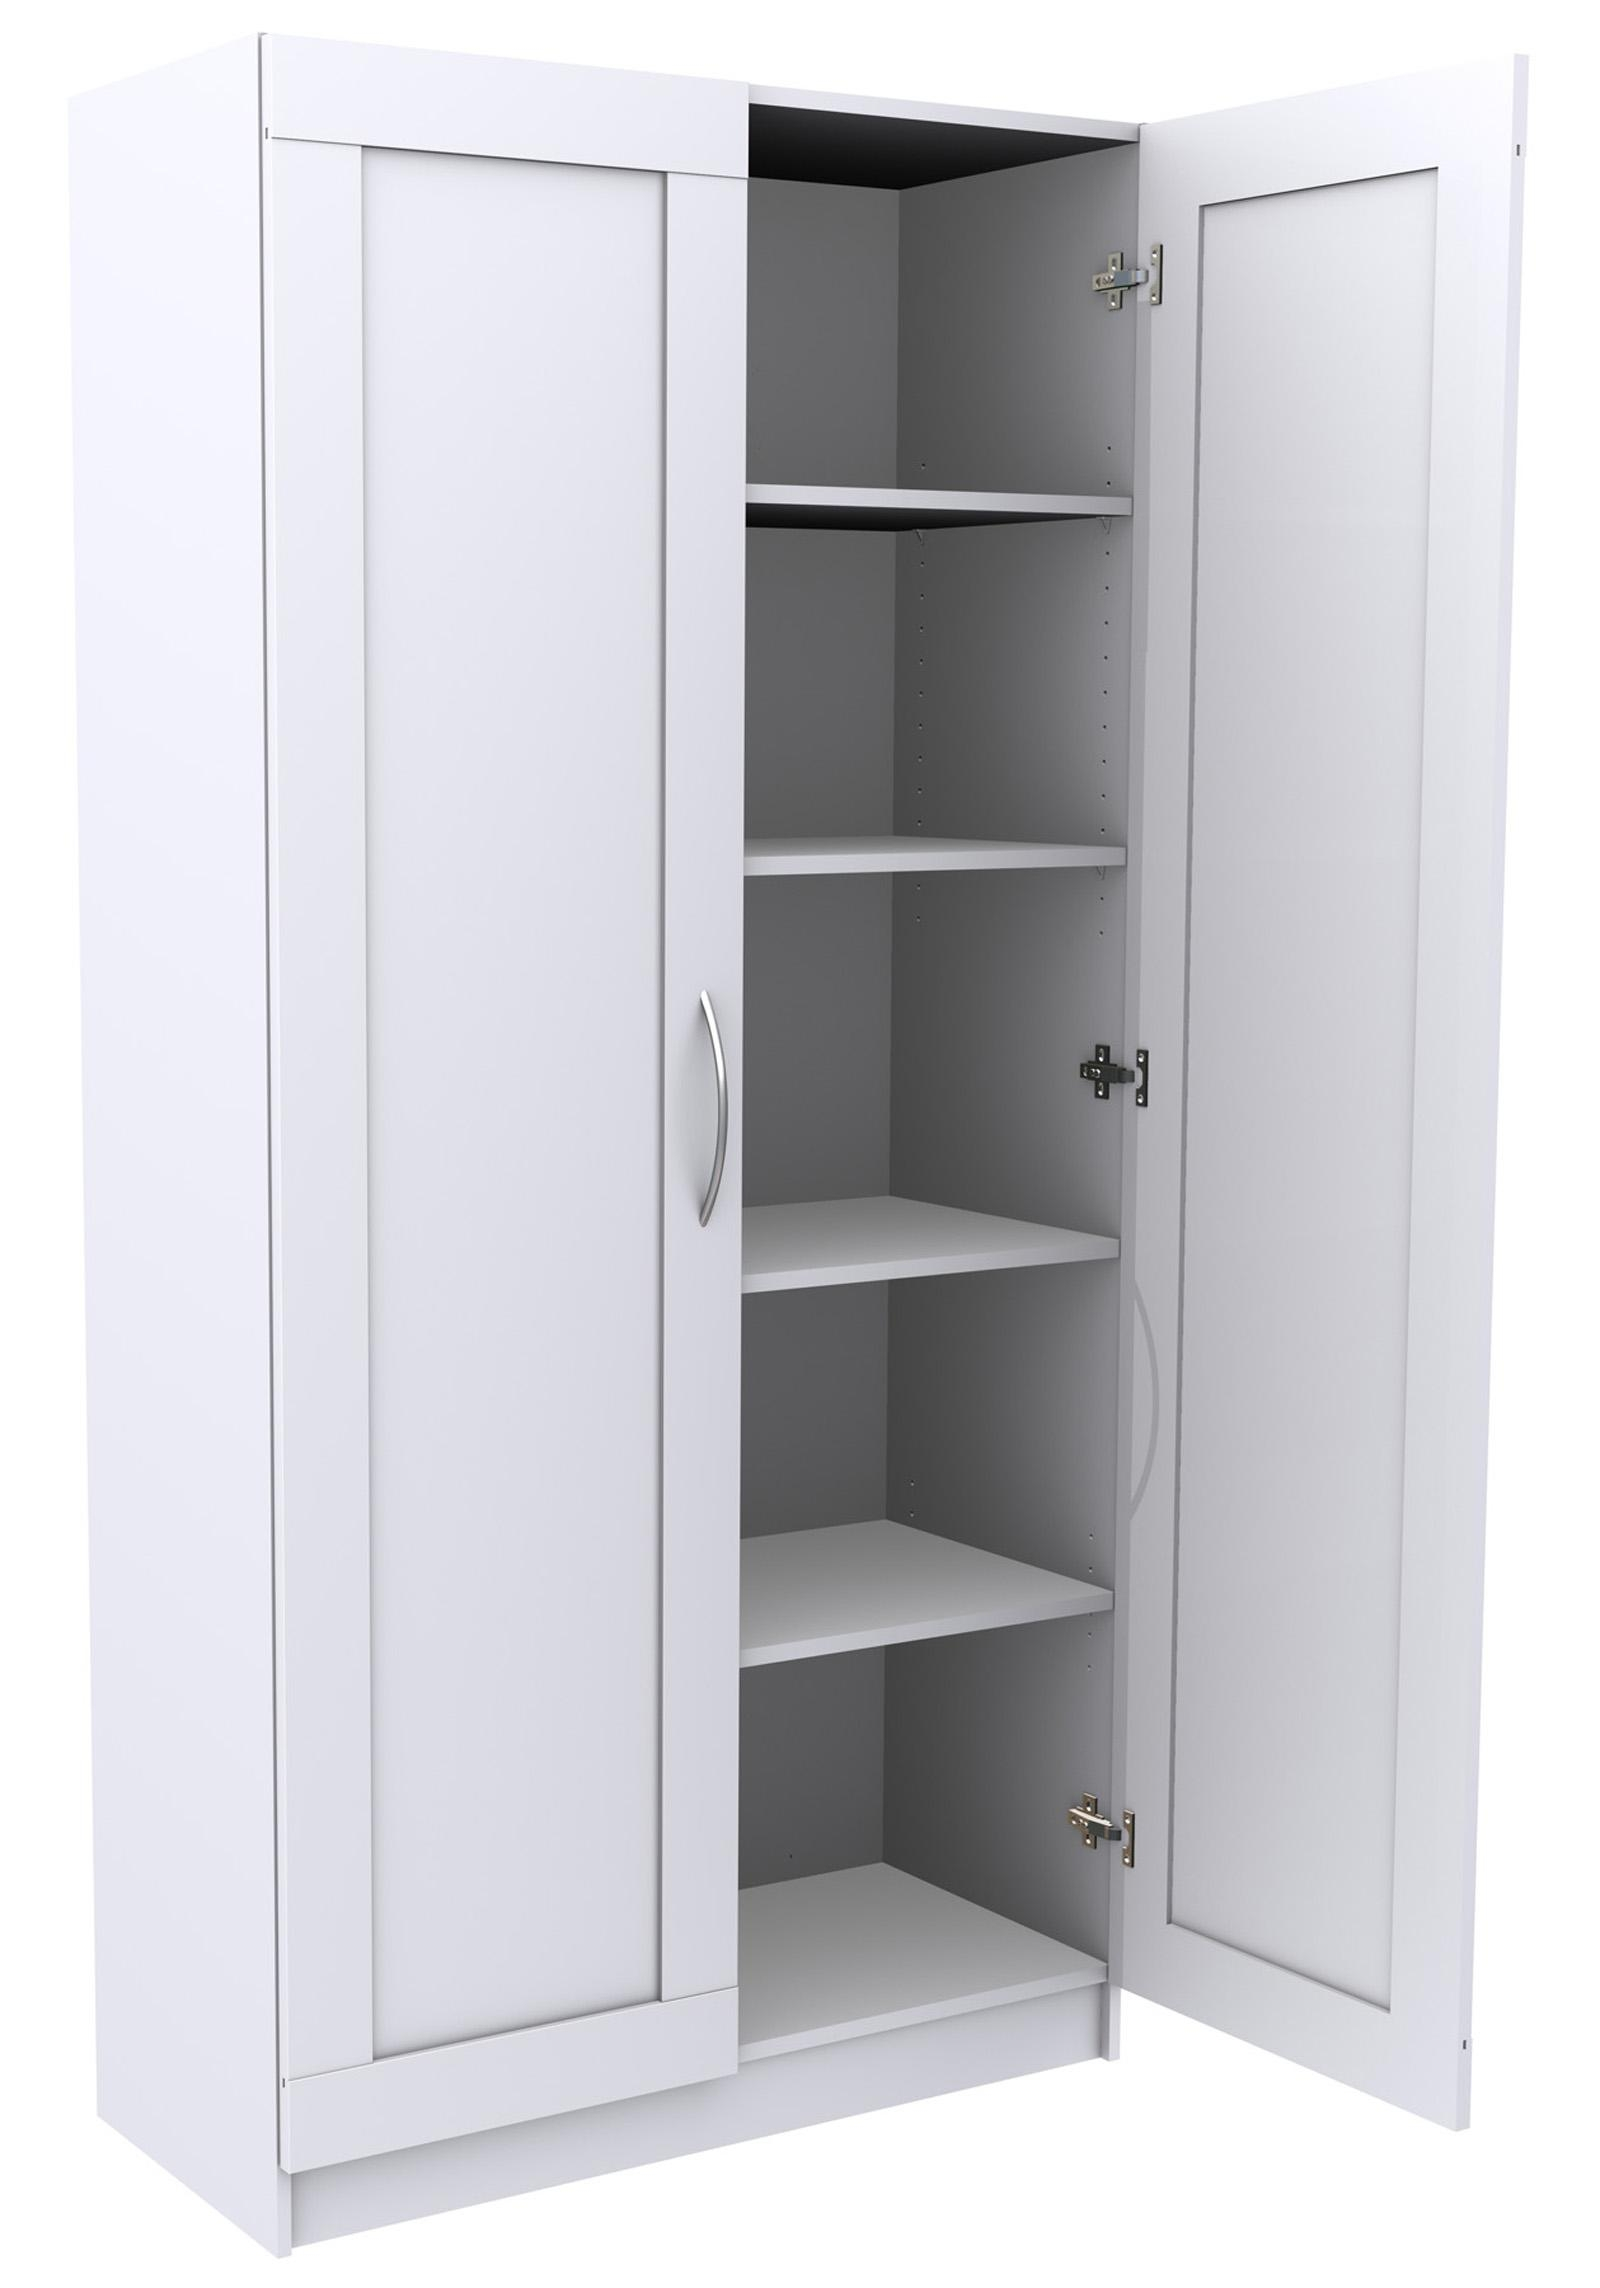 Storage Cabinet With Shelves And Doors